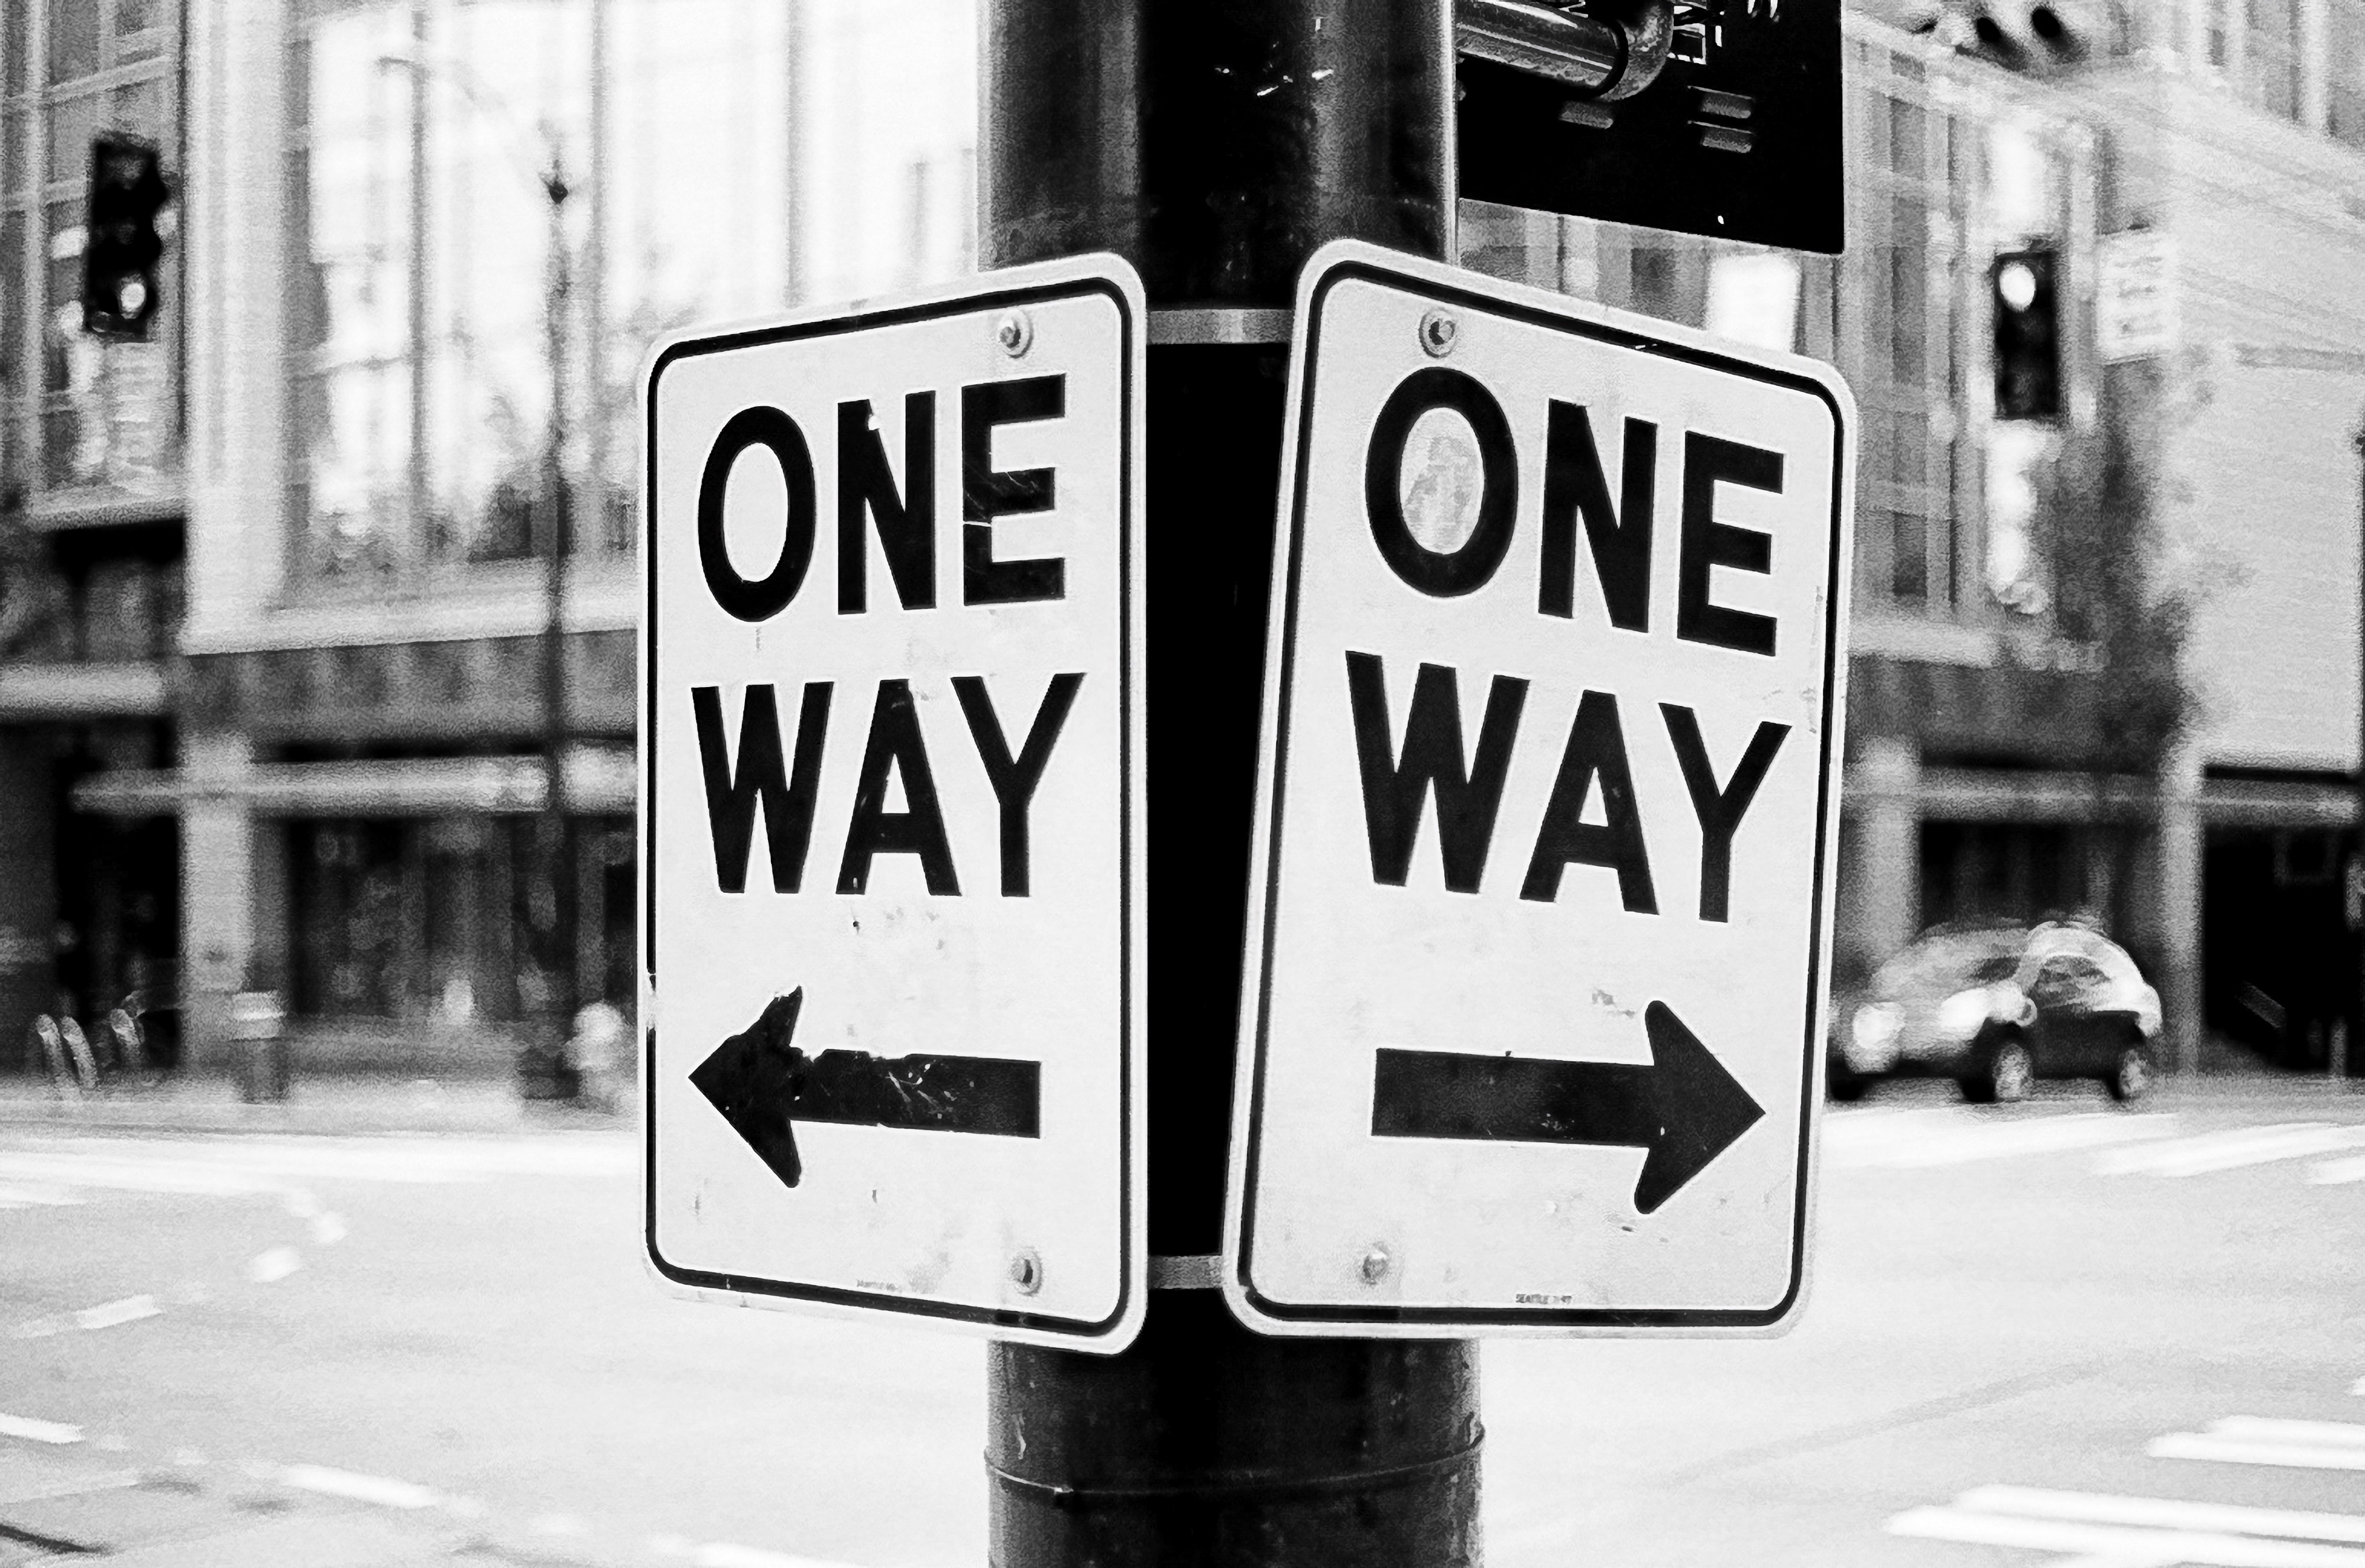 2 one-way signs pointing different directions